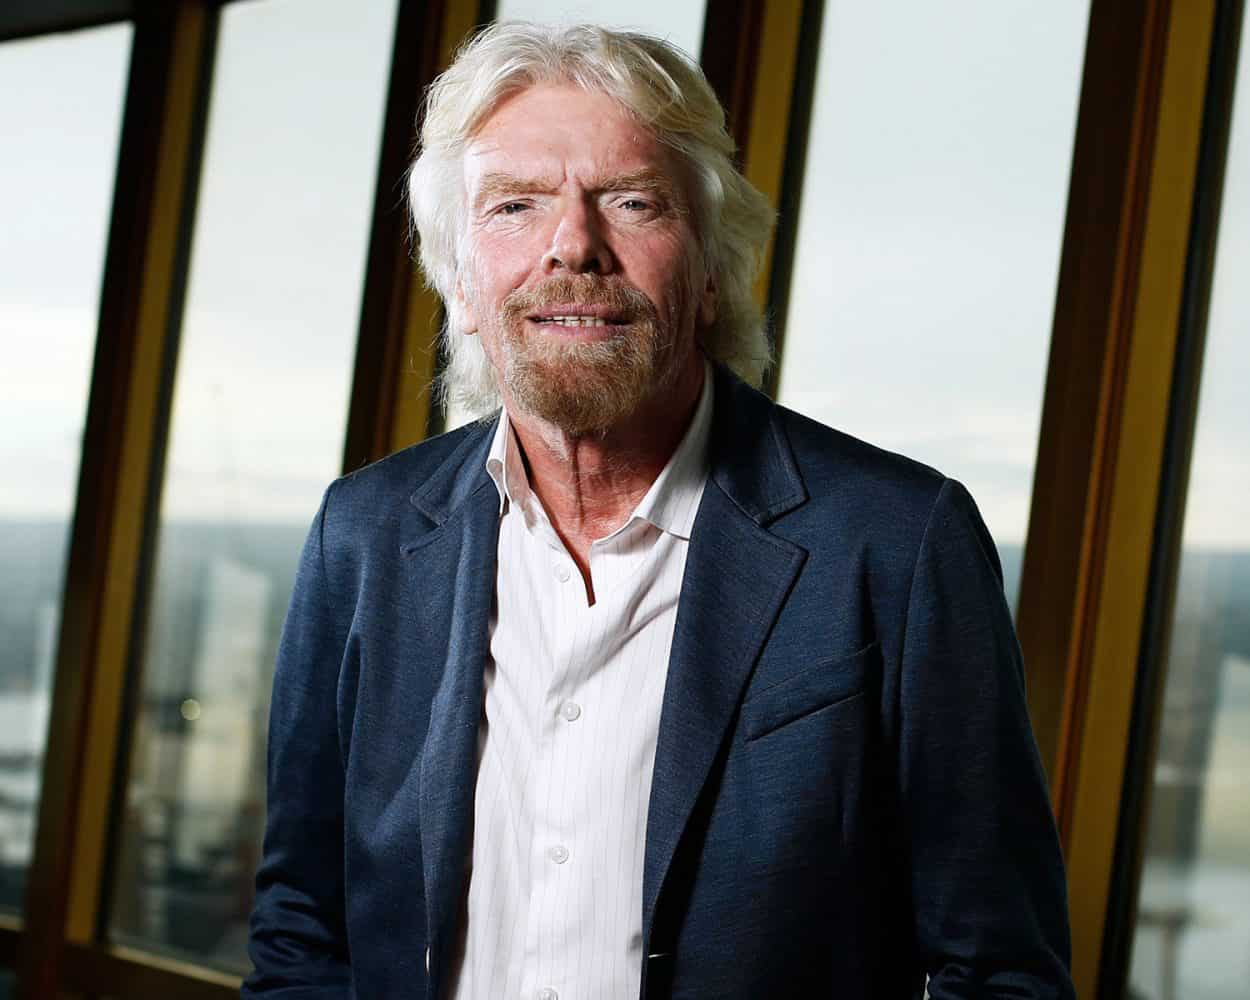 A 97% Discount on a Private Island – Richard Branson's Art of Negotiation (And 7 Other Skills Business Leaders Need to Develop)